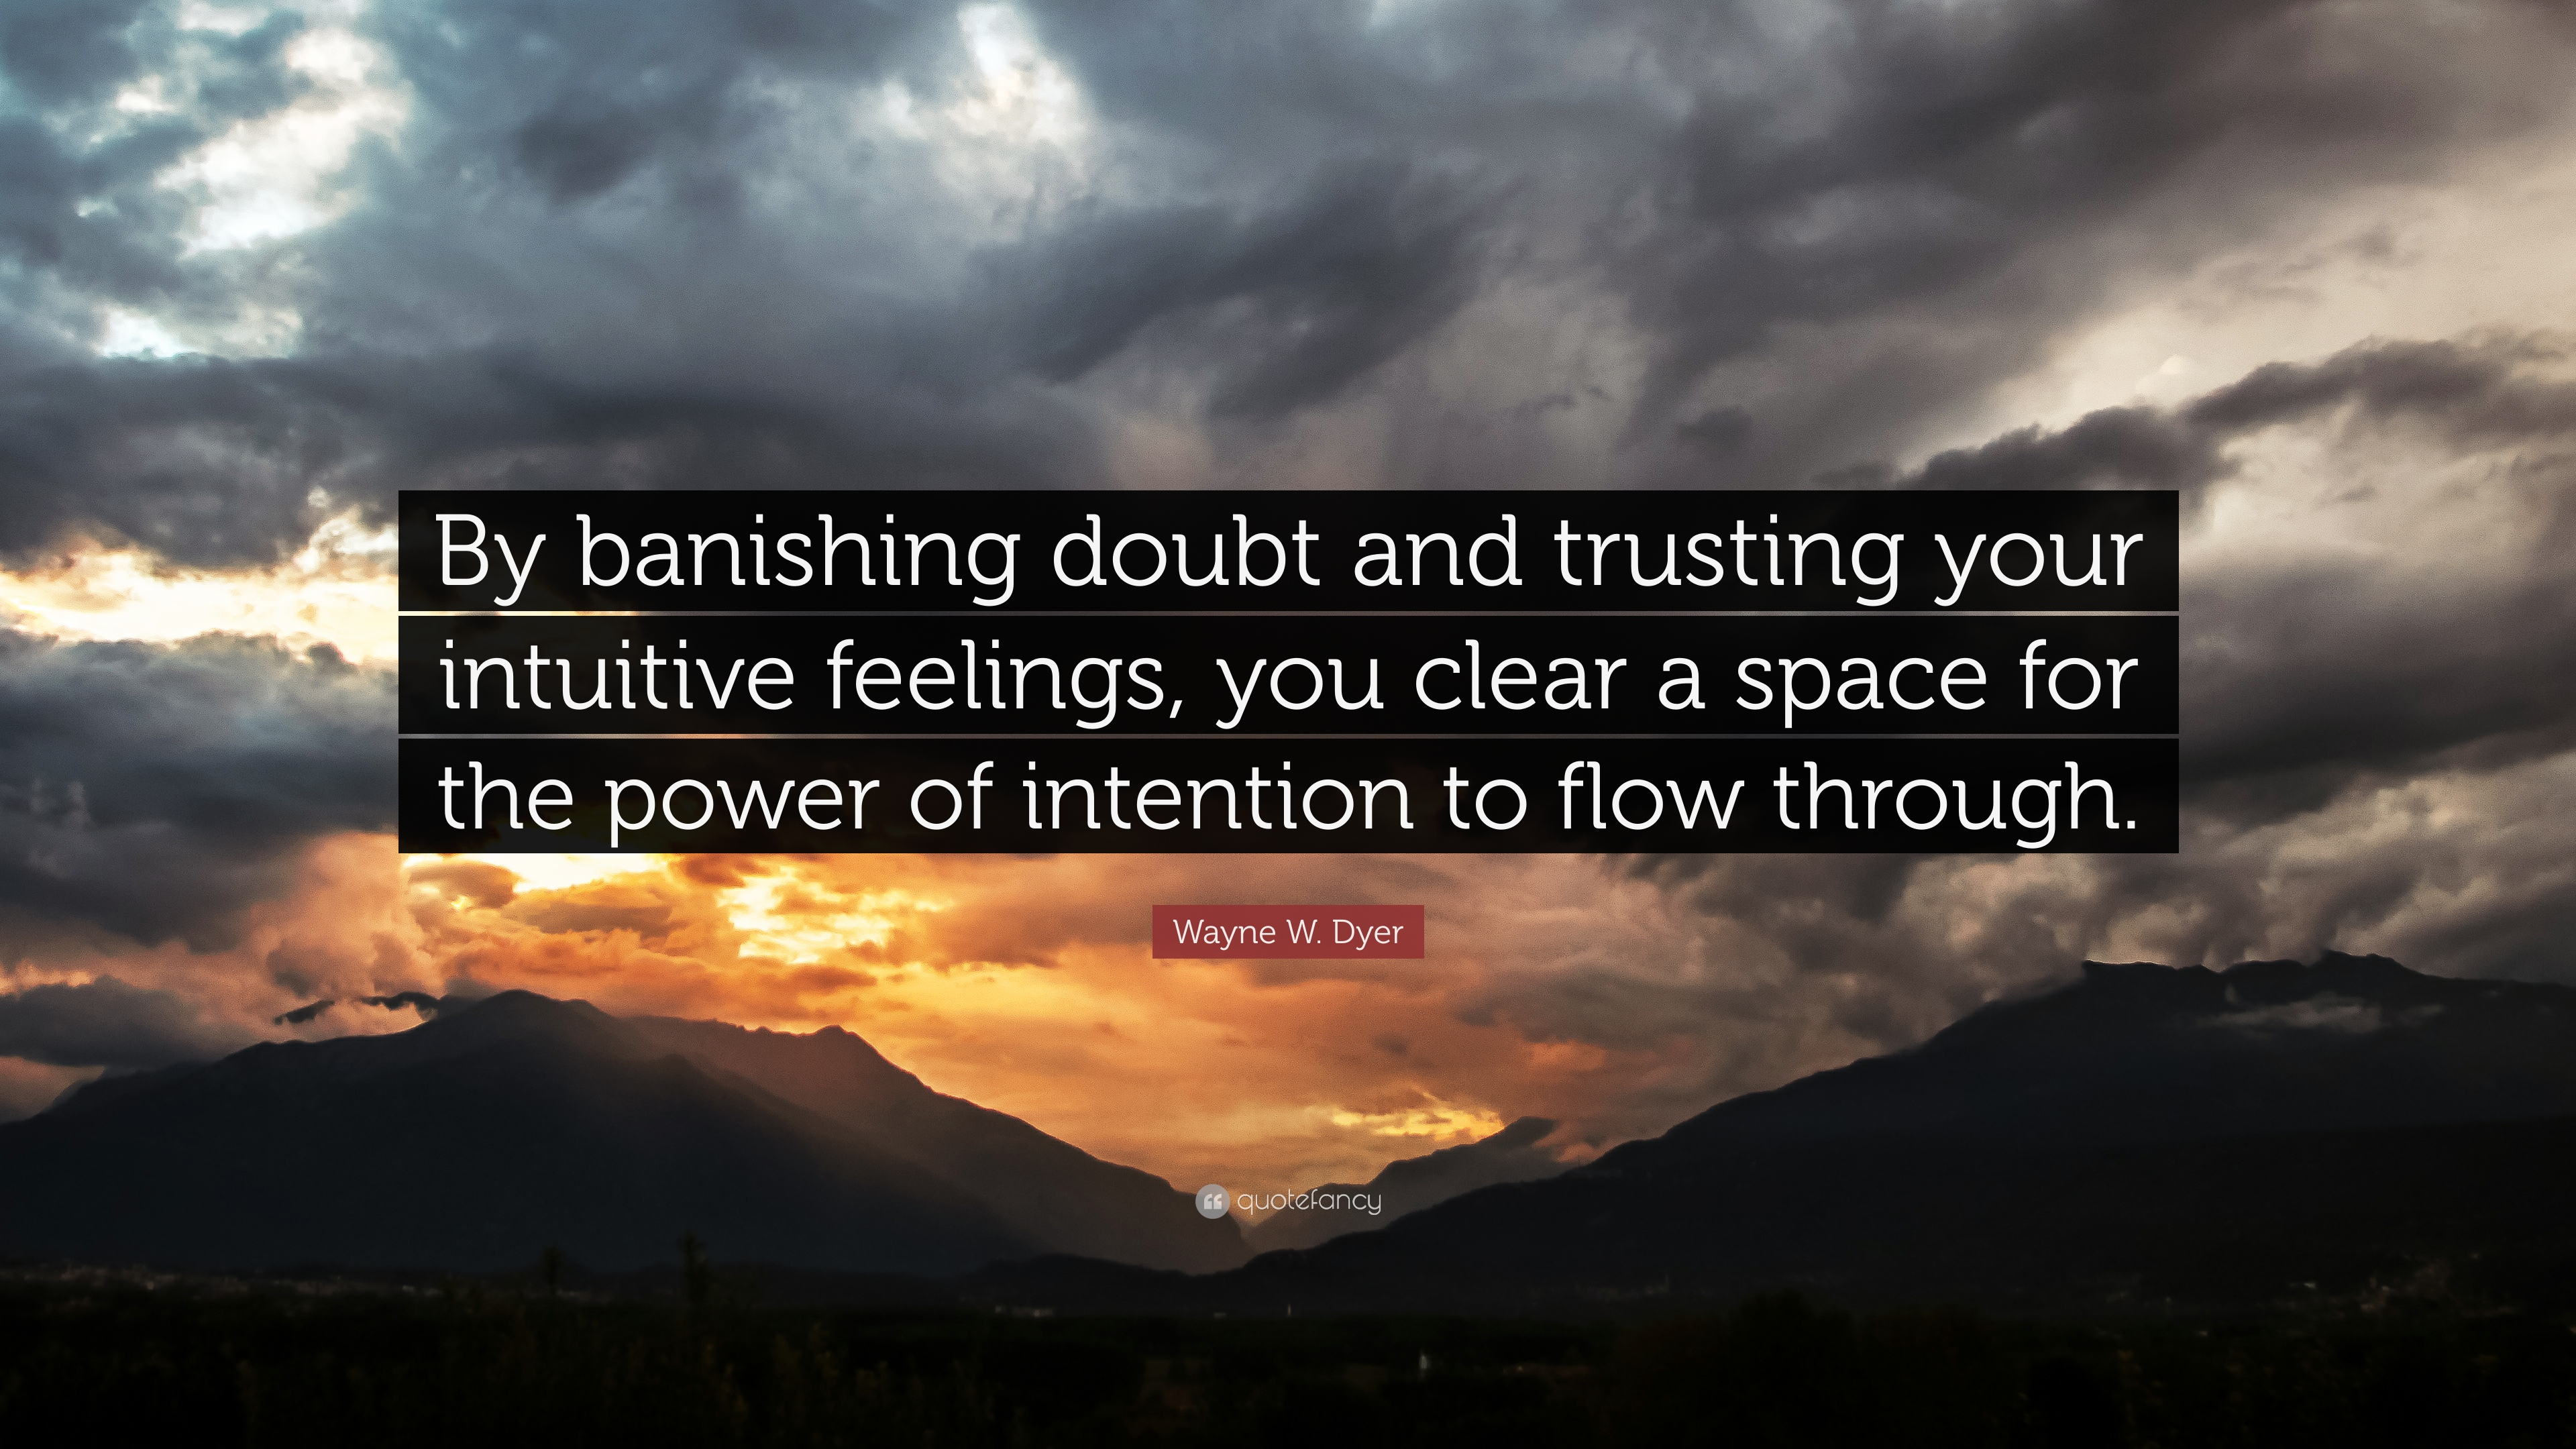 Wayne W Dyer Quote By Banishing Doubt And Trusting Your Intuitive